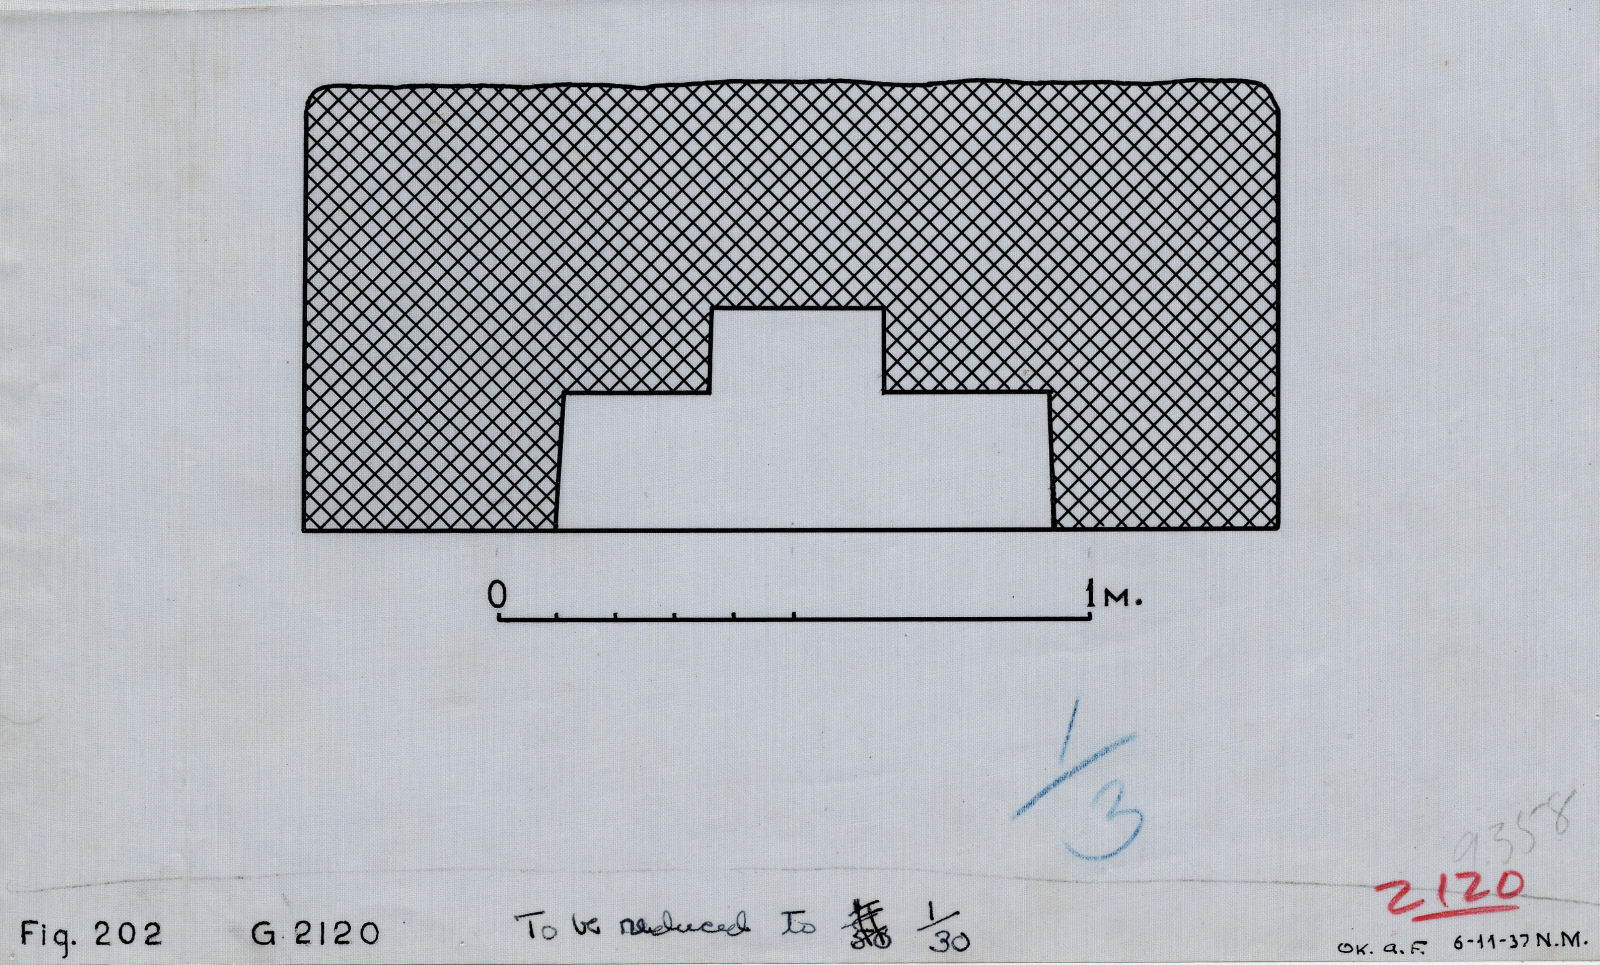 Maps and plans: G 2120, Plan of niche